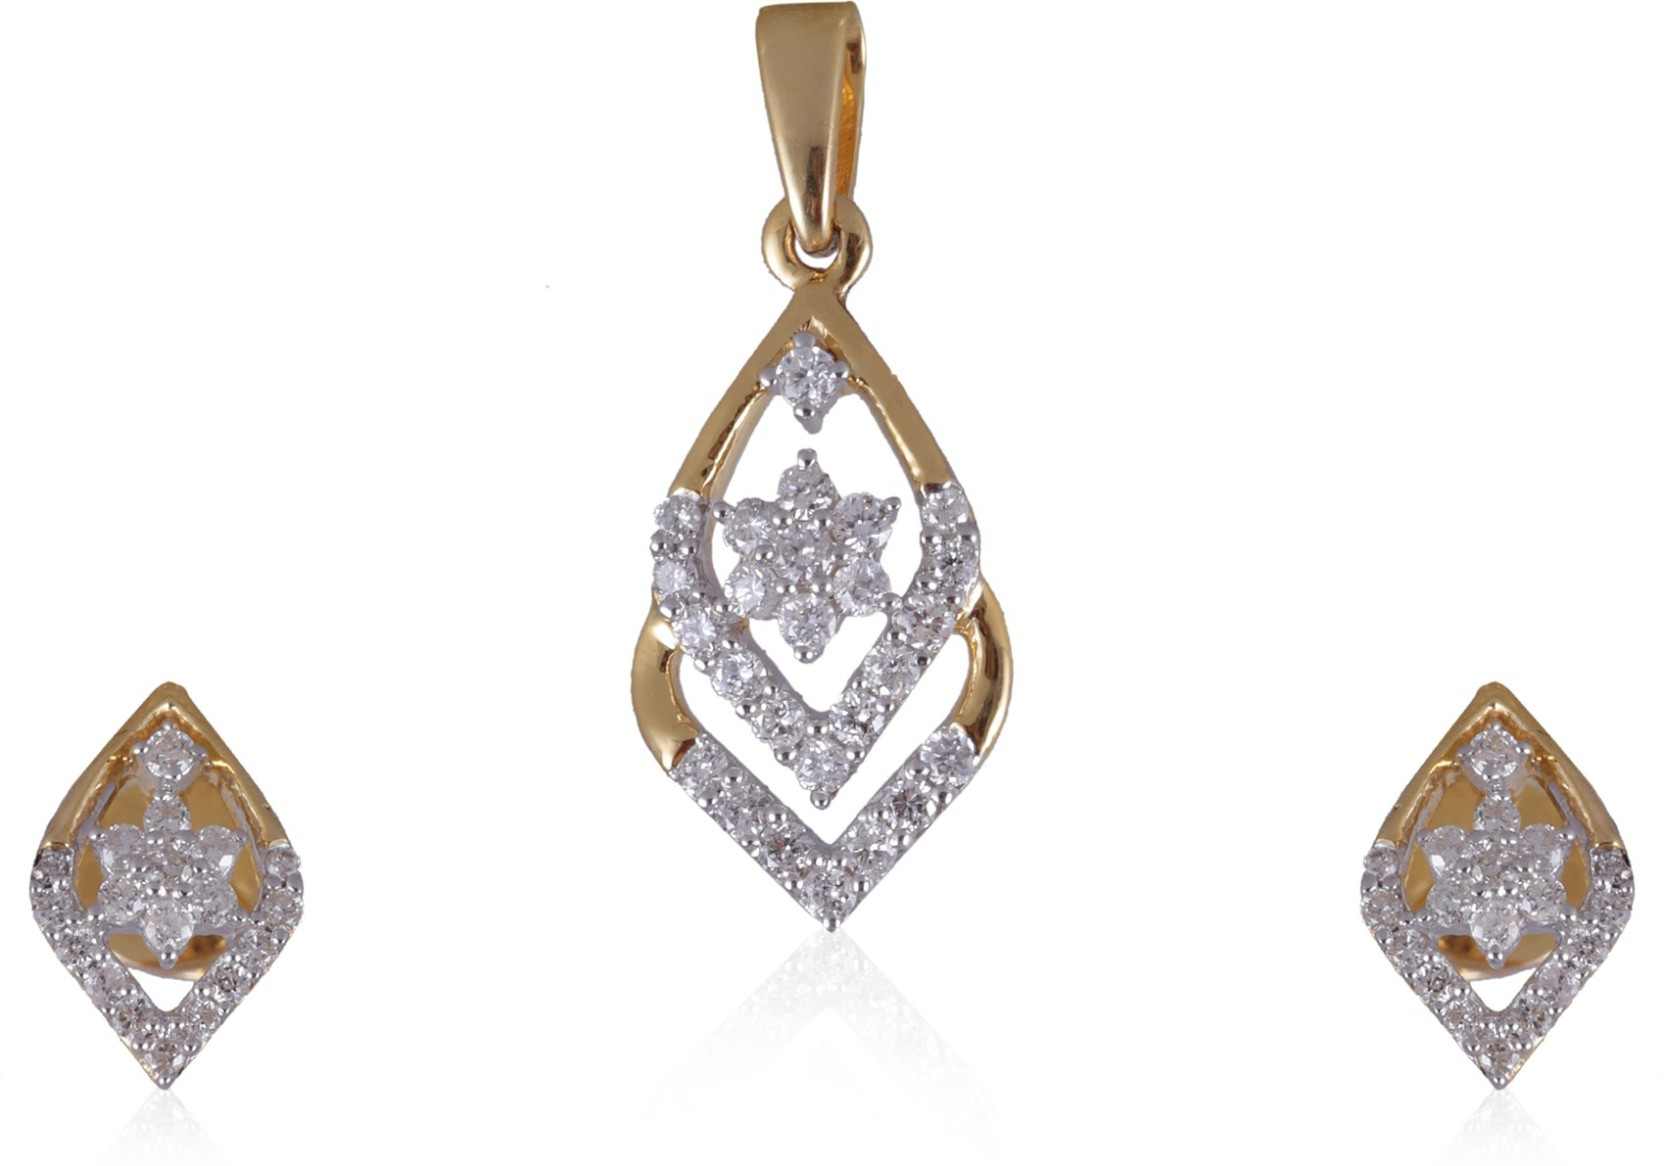 Jisha Yellow Gold 18kt Diamond Earring & Pendant Set Price in India